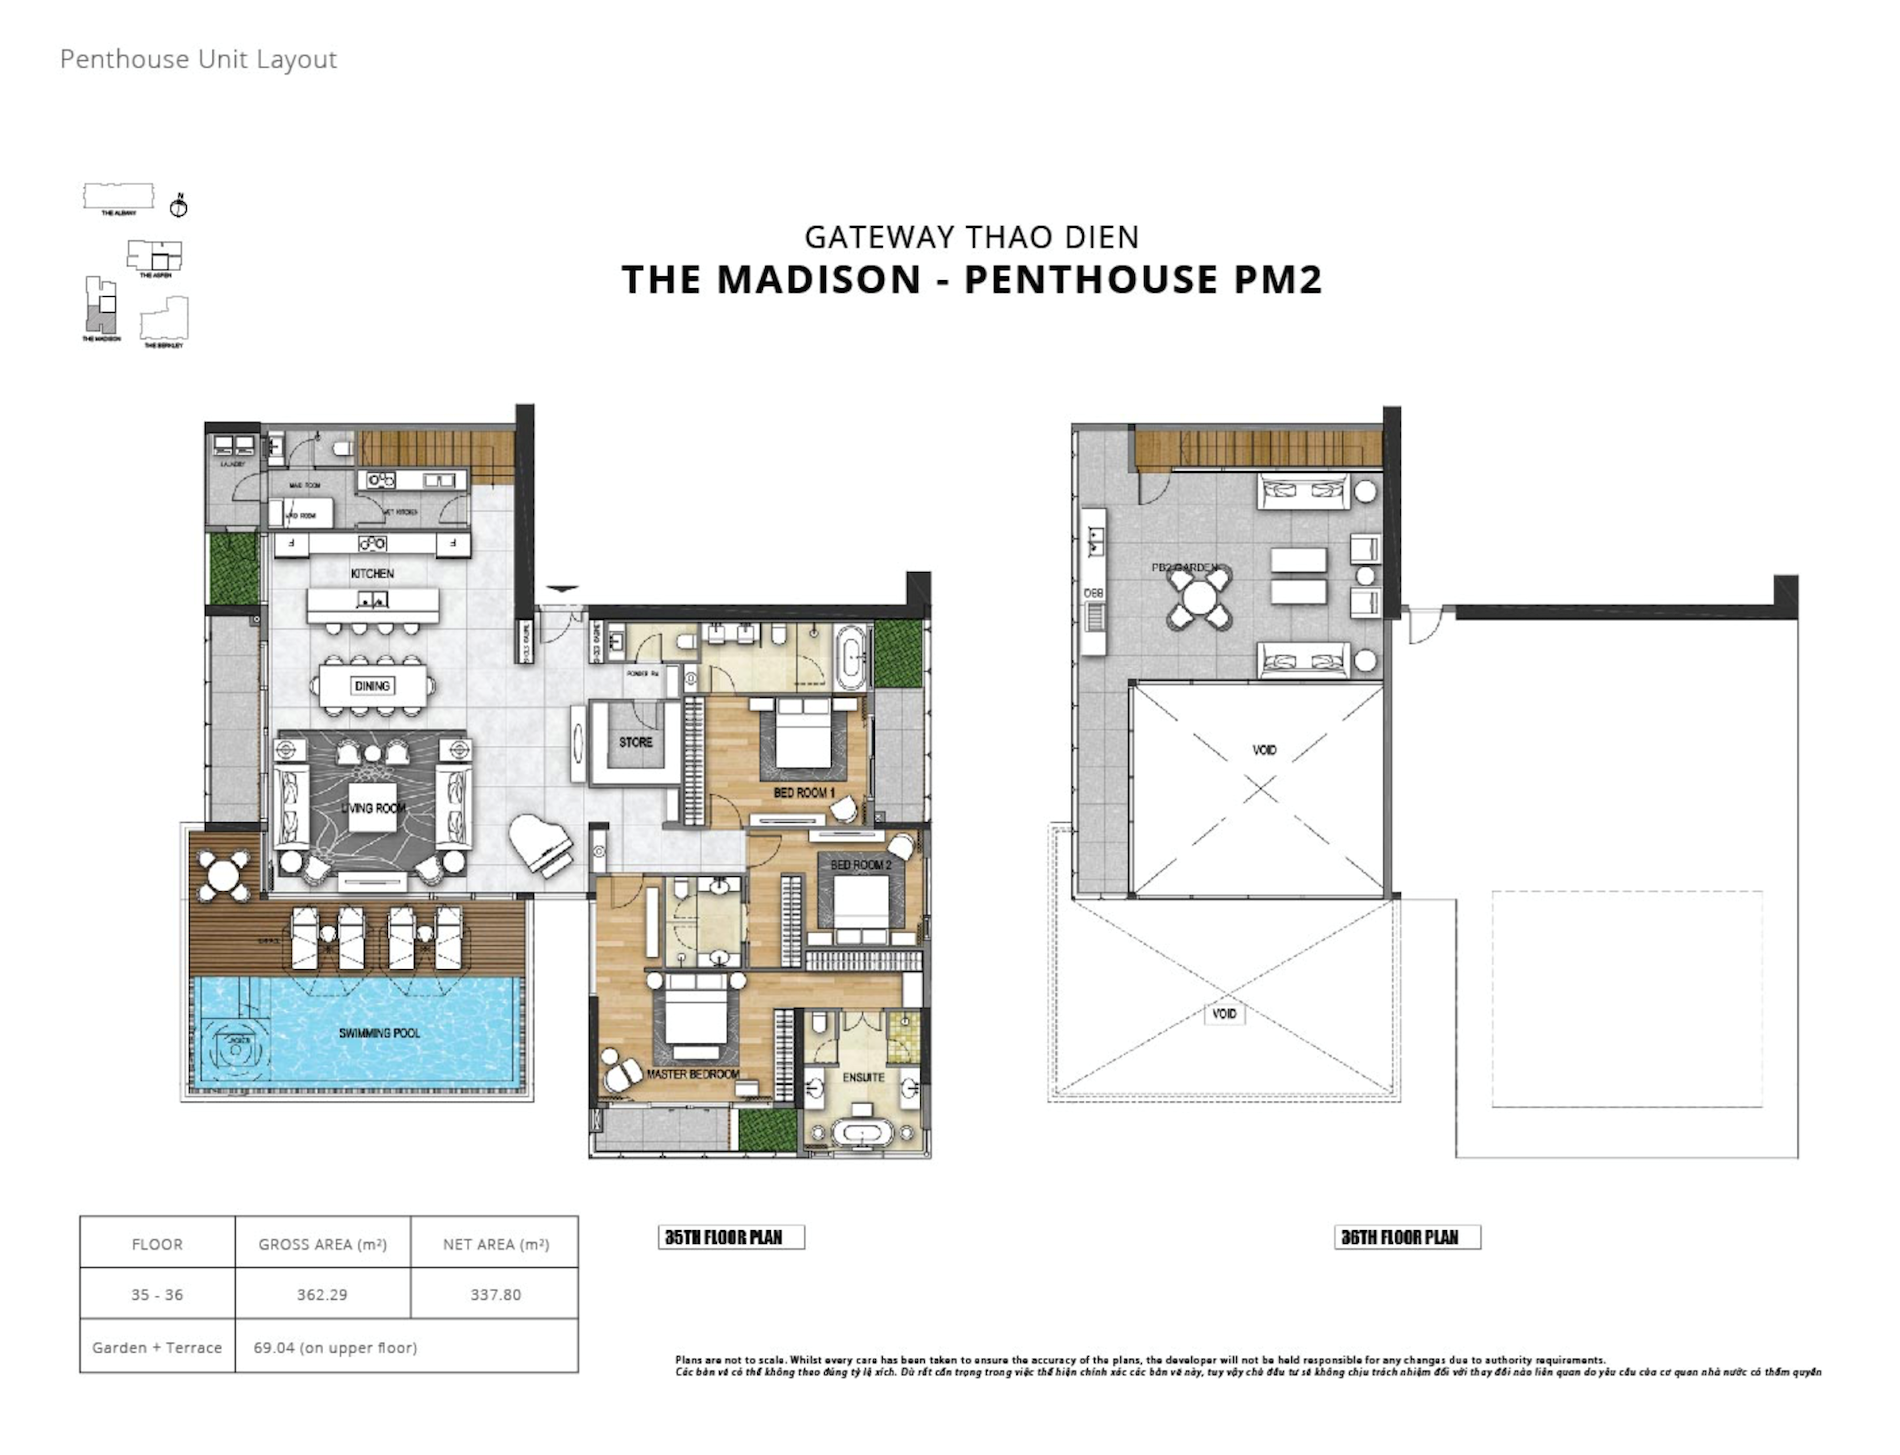 https://www.saos.vn/Uploads/t/pe/penthouse-gateway-thao-dien-duplex-penthouse-the-madison-pm2_0014024.png